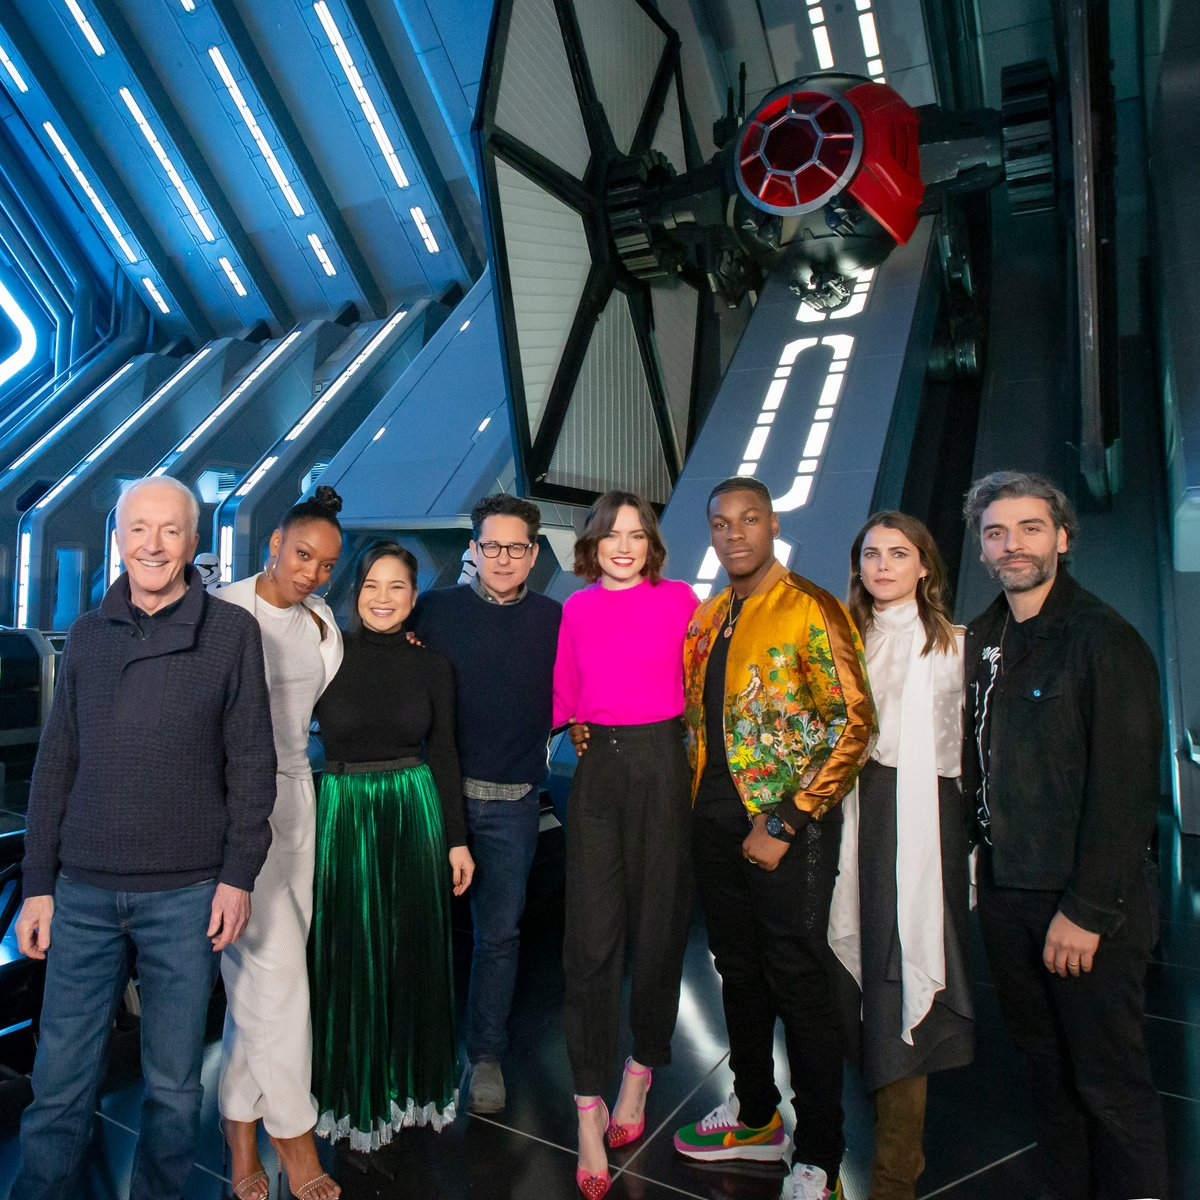 Disneyland Resort On Twitter The Cast And Crew Of Star Wars The Rise Of Skywalker Got A First Look At Star Wars Rise Of The Resistance At Disneyland Park The Attraction Opens